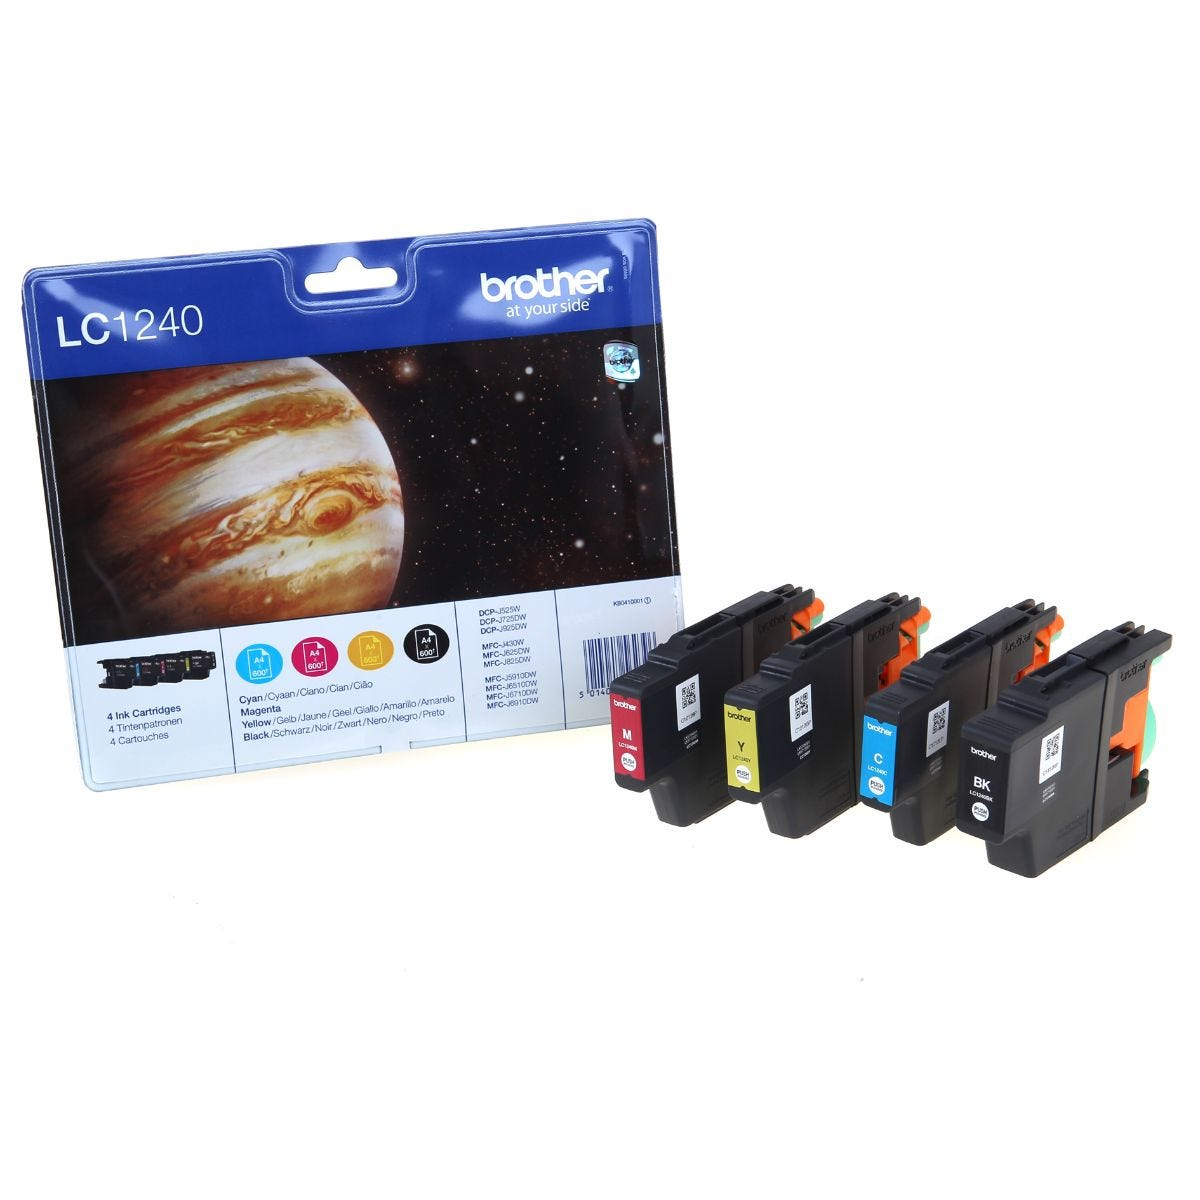 Image of Brother LC1240 Multipack Ink Cartridges, Multi